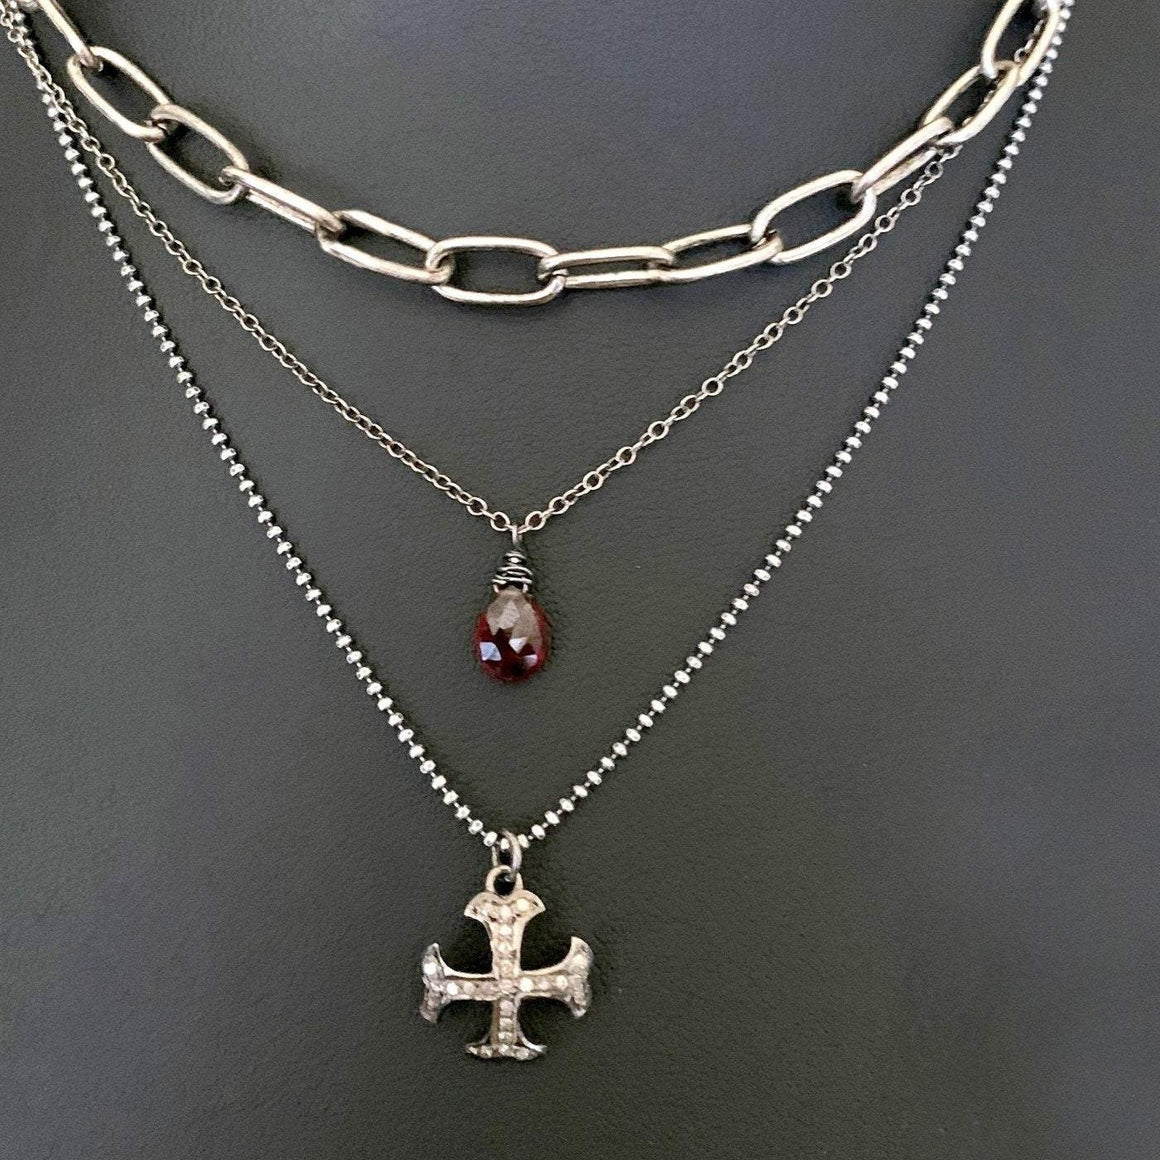 Pave DIAMOND Maltese Cross Layering Chain Necklace - ViaLove Designs